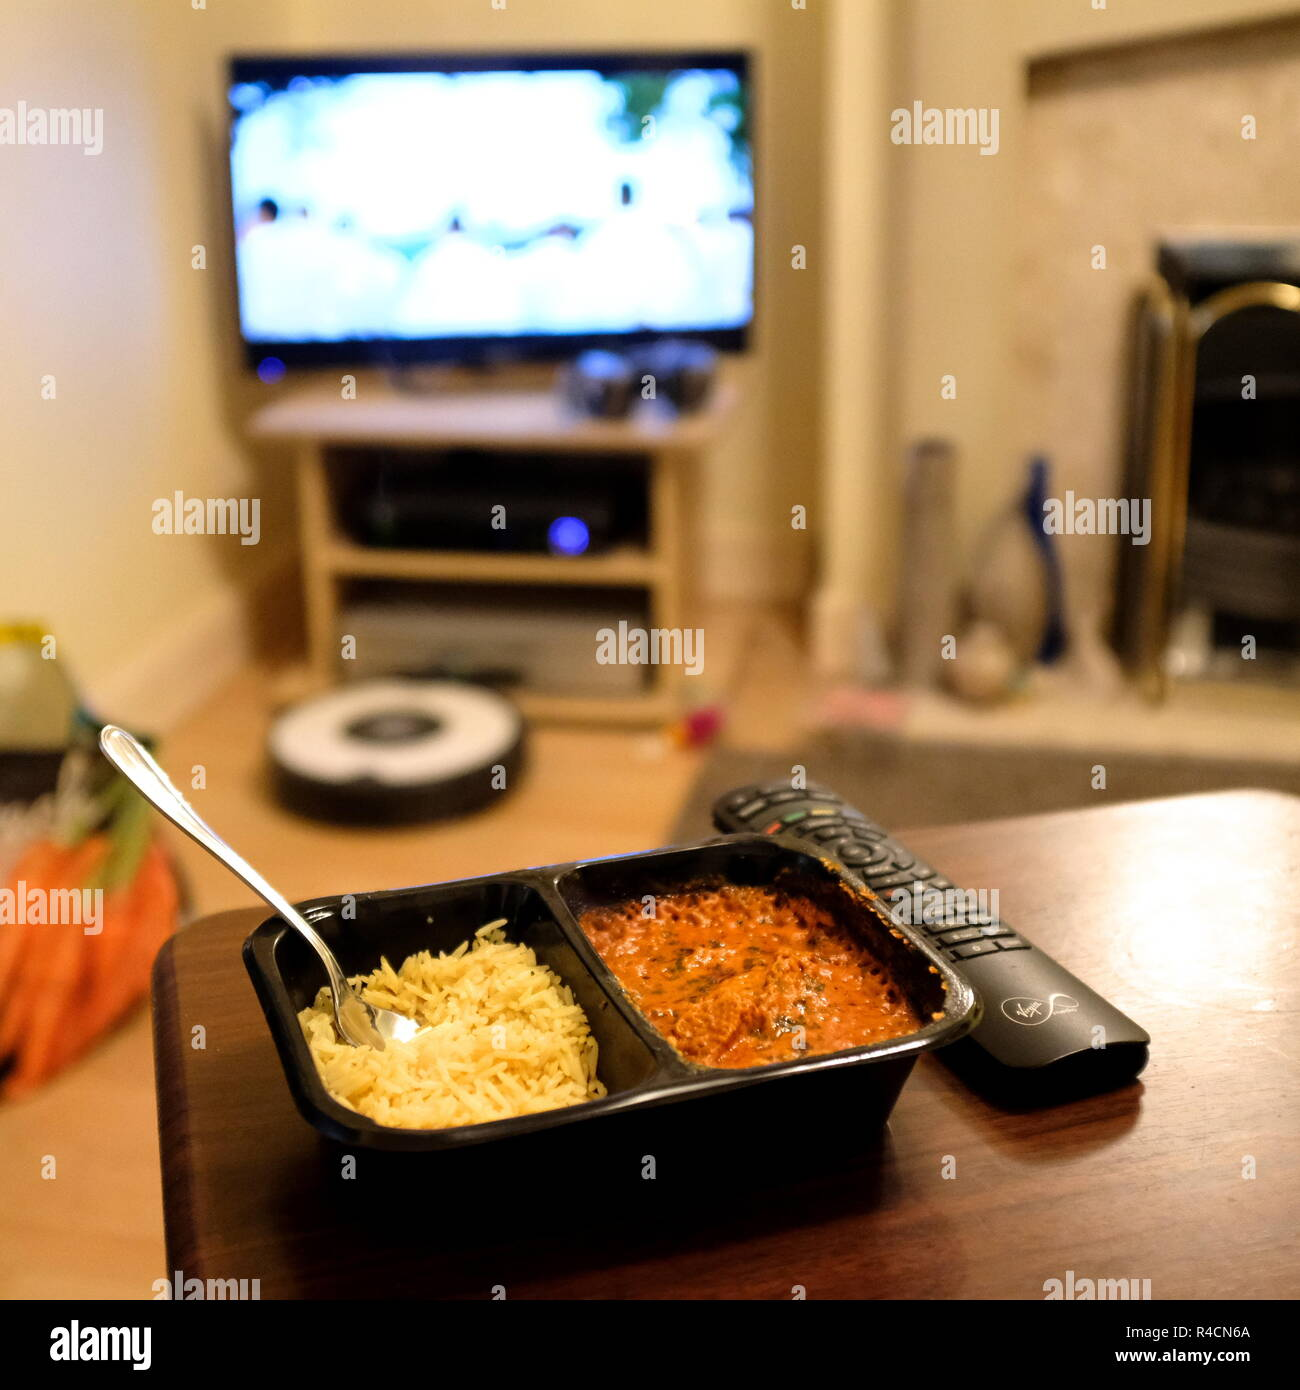 chicken tikka masala ready meal infront of tv - Stock Image